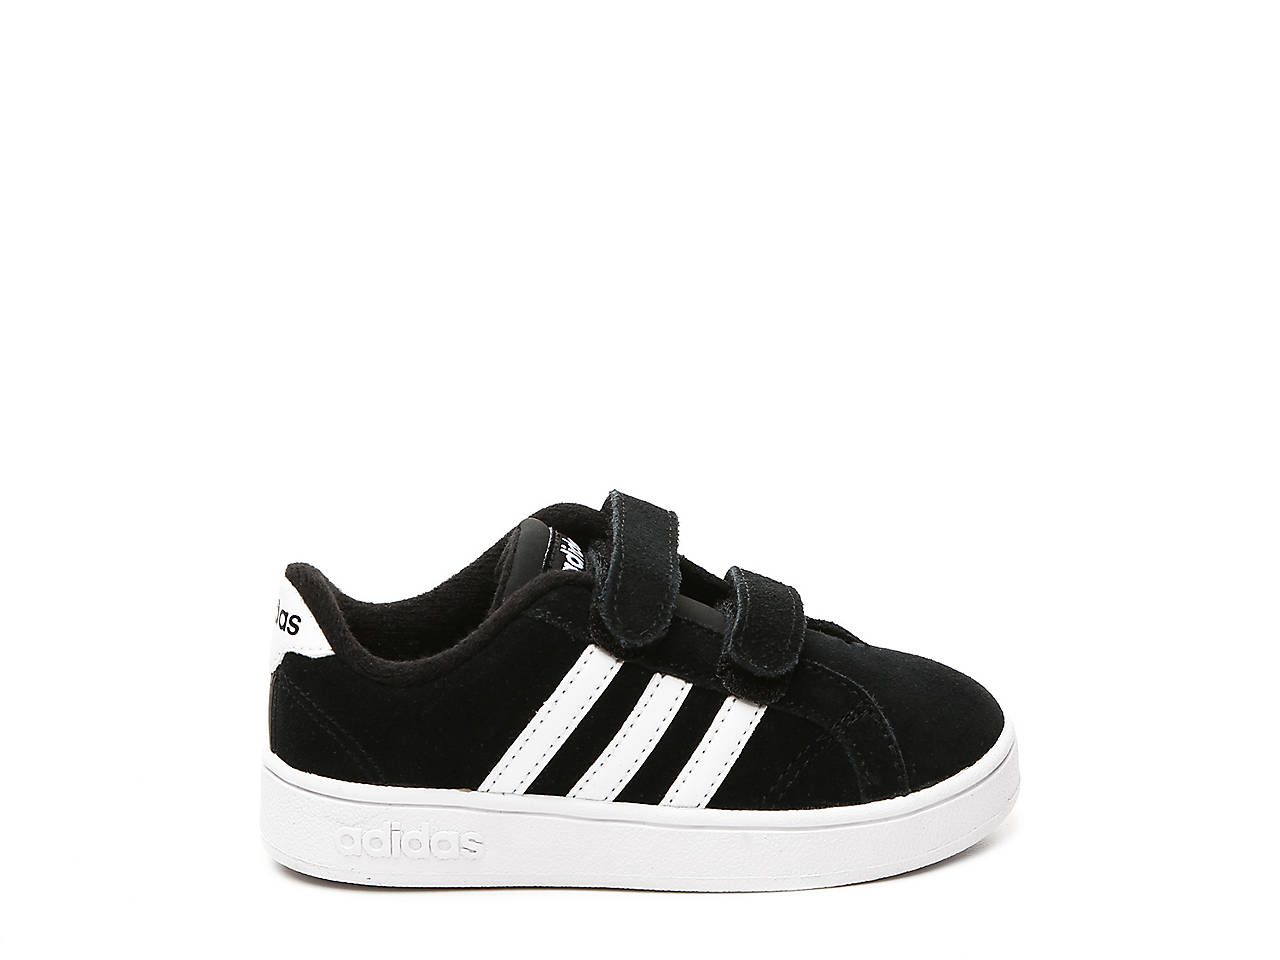 a92090a5216be2 AW4299 88977240640  Adidas Neo Baseline size 8  adidas Baseline Infant  Toddler Sneaker Kids Shoes DSW ...